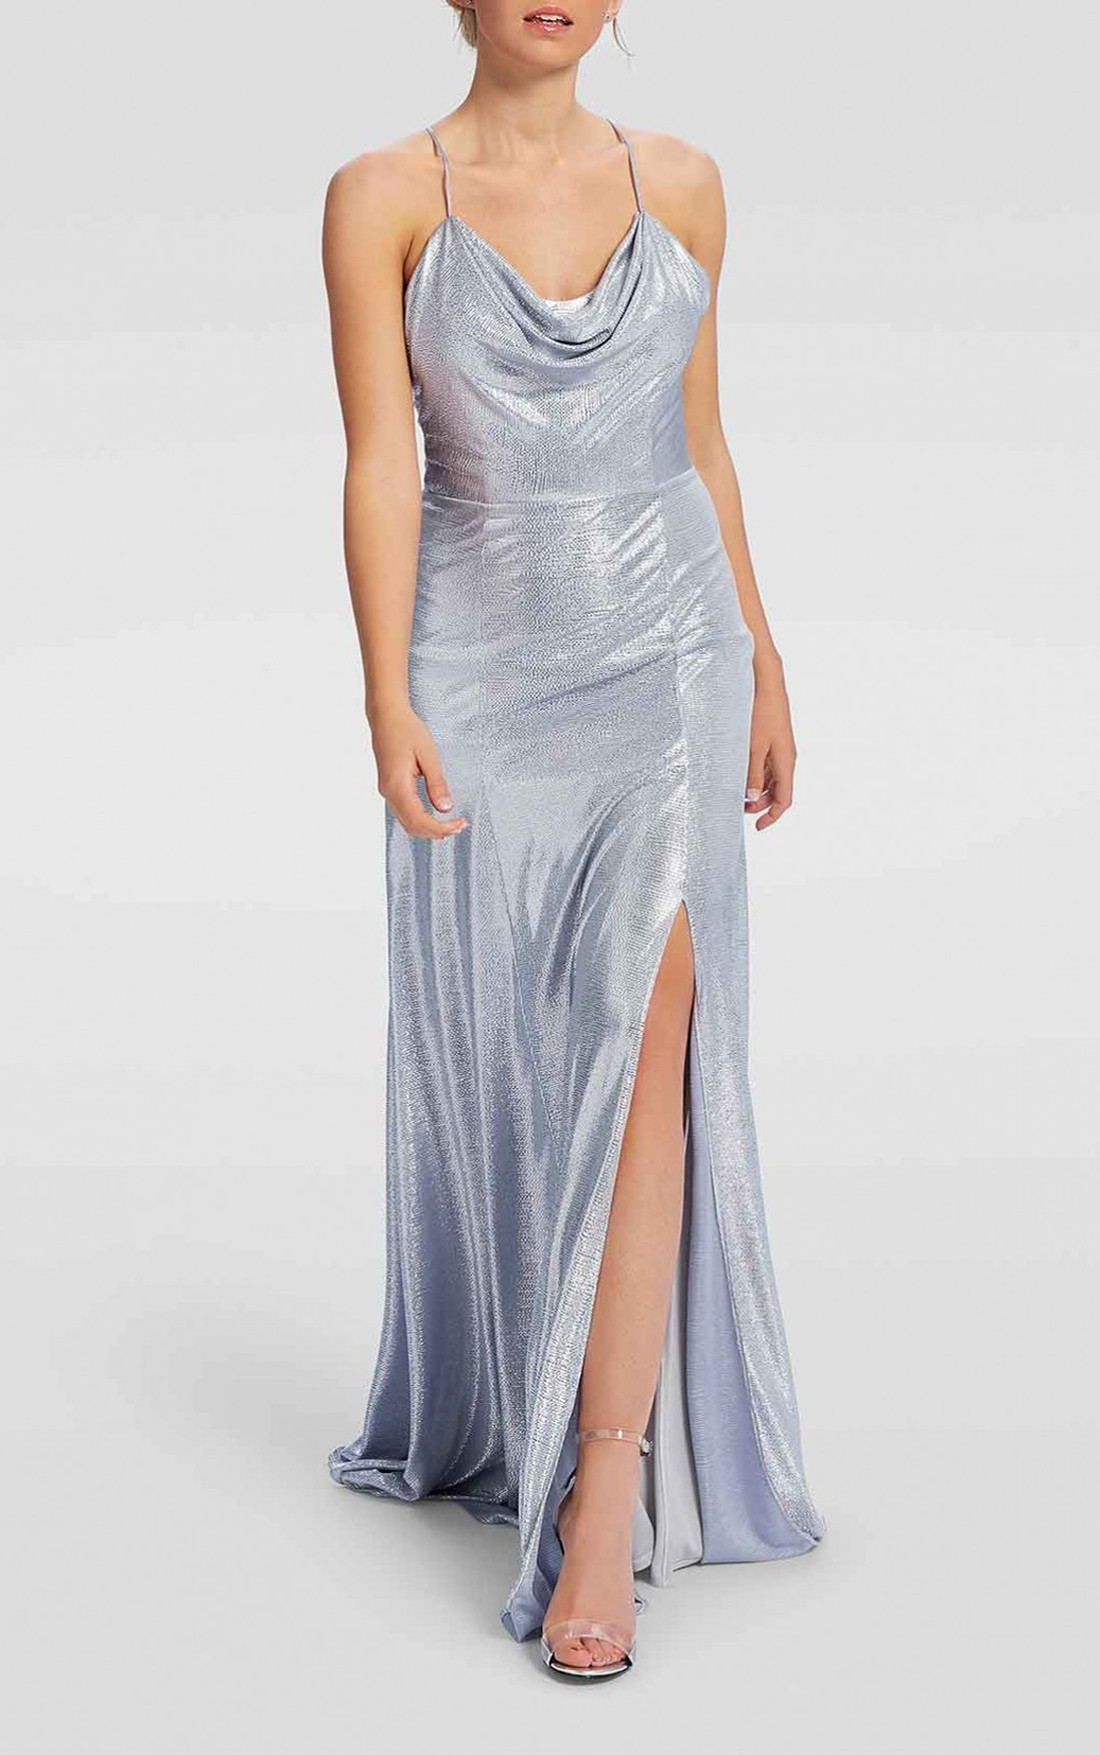 Forever Unique - Mojito Metallic Silver Cowl Neck Maxi Evening Gown (AF1007)